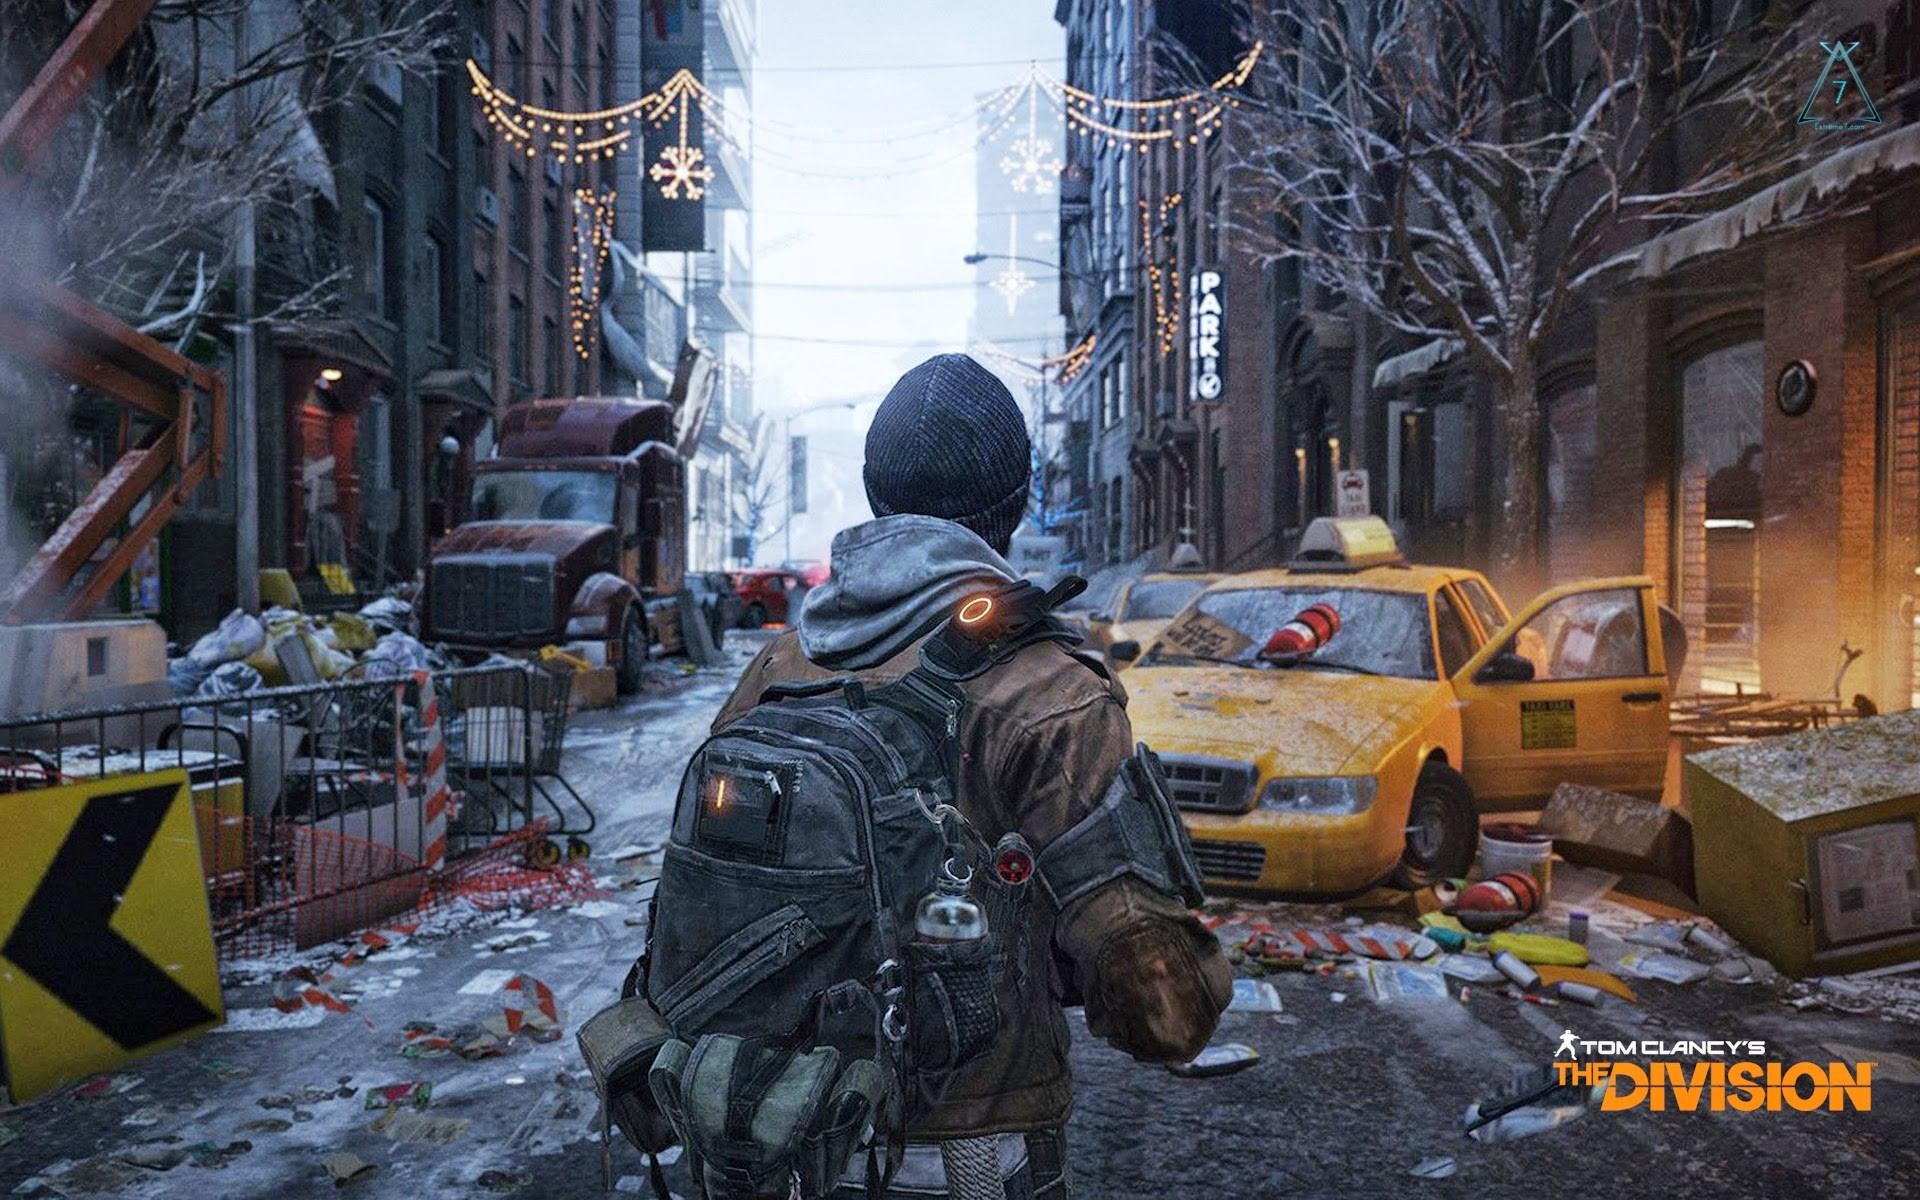 The Division Wallpaper 1920x1080 87 Images